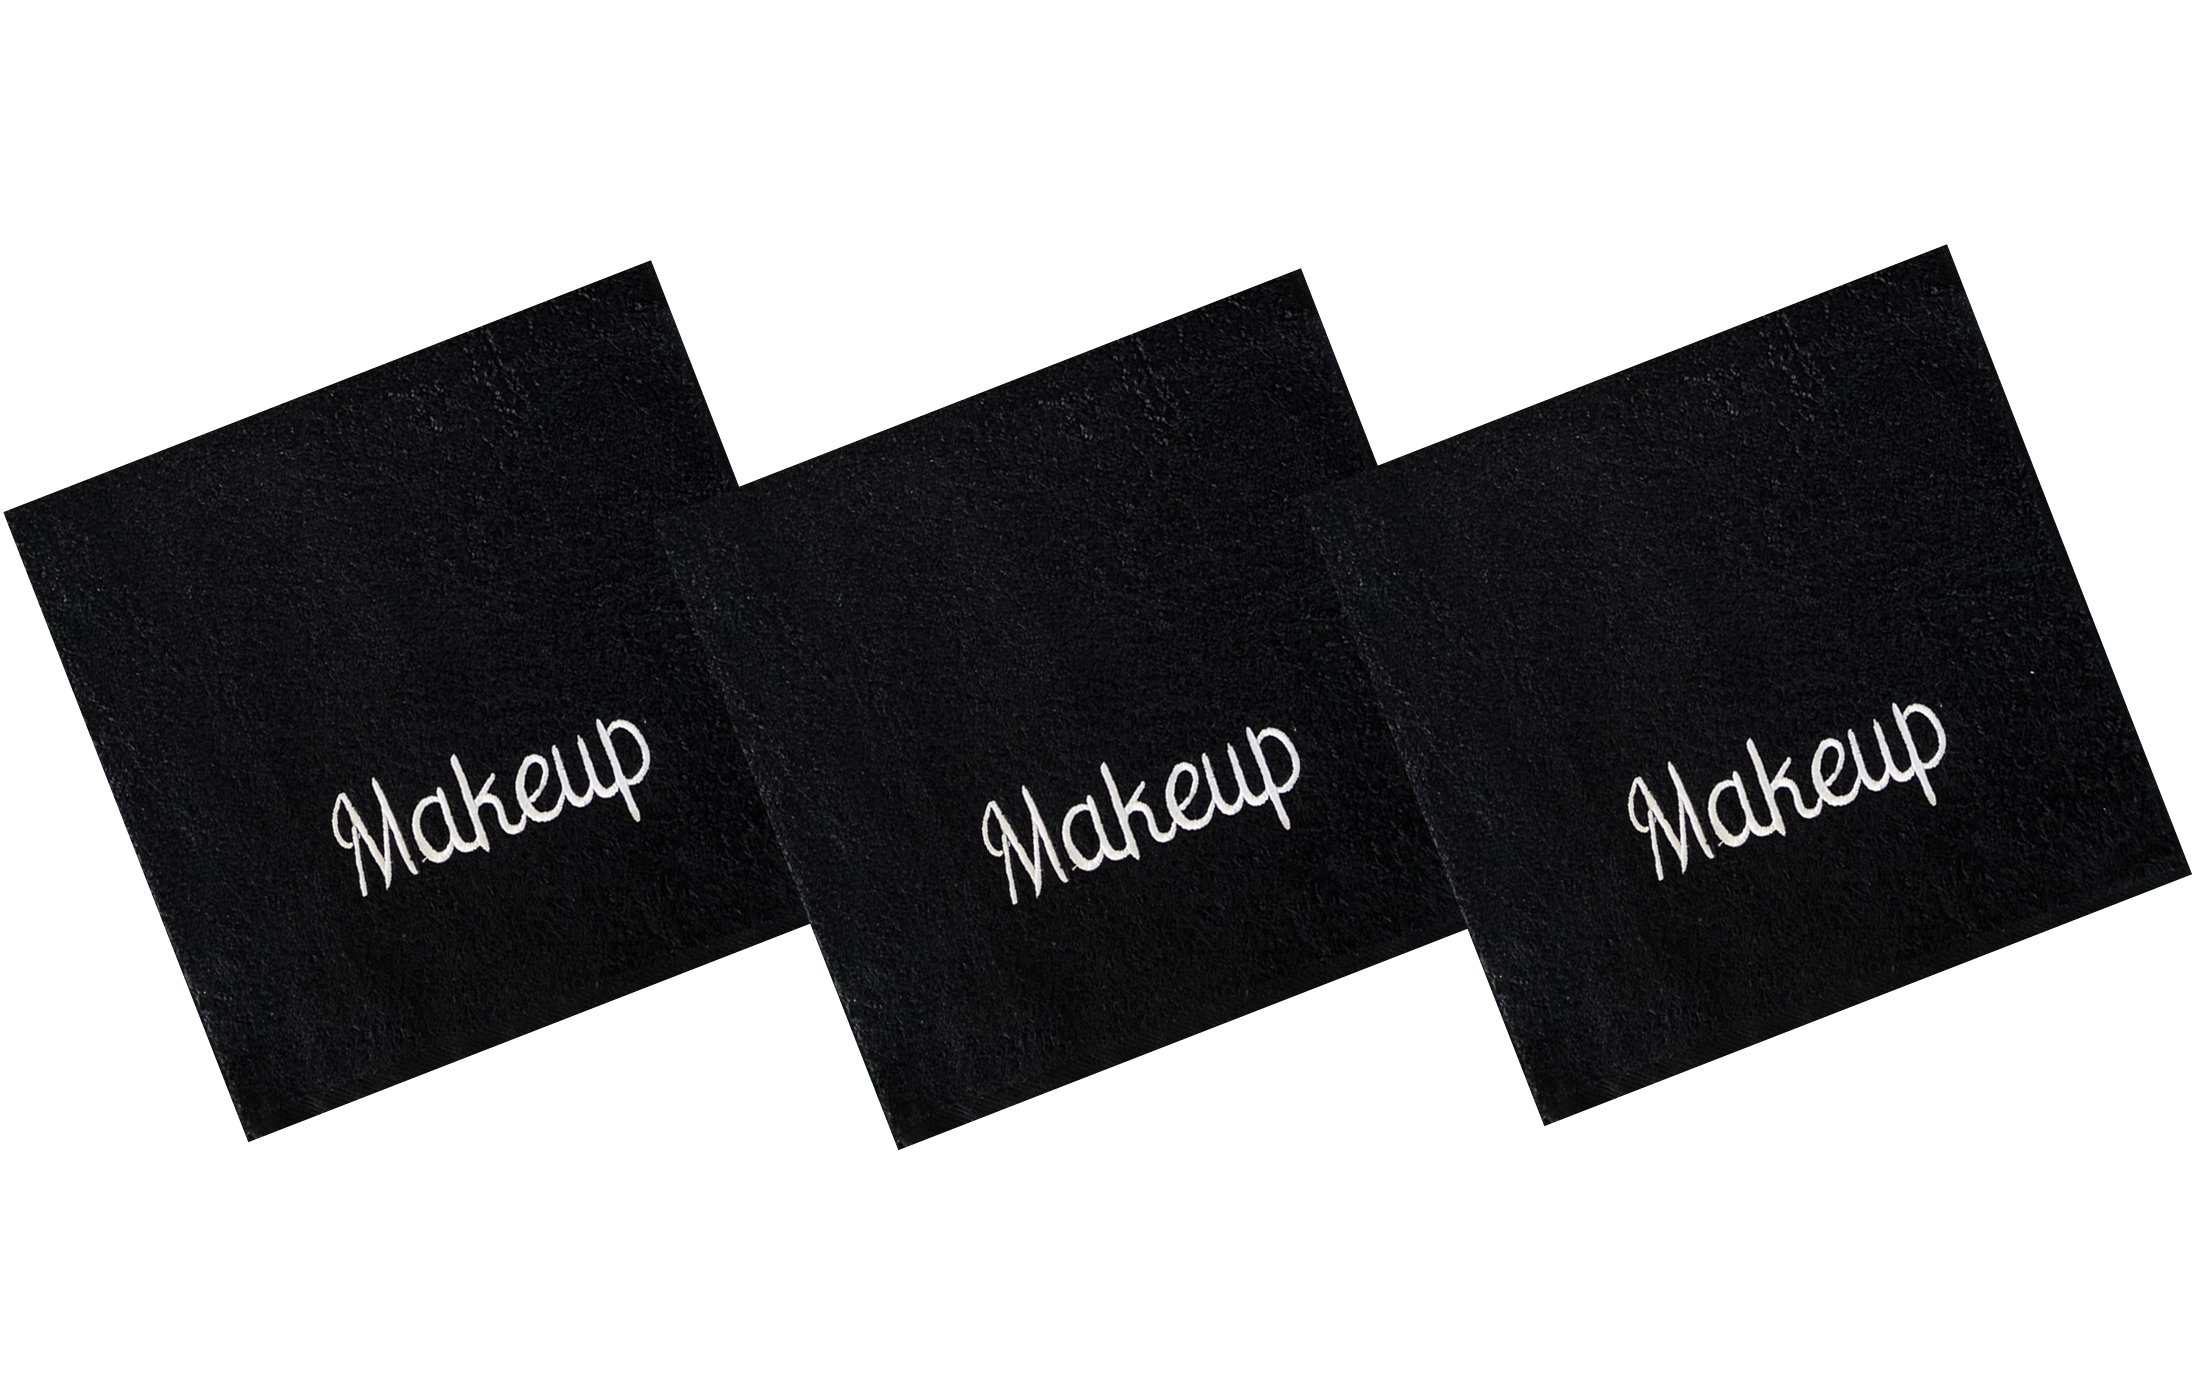 Luxury 100% Cotton Makeup Removal and Cleansing Embroidered Wash Cloths, New Colors, Set of 3 Make-Up Wash Cloths, Black with White Embroidery